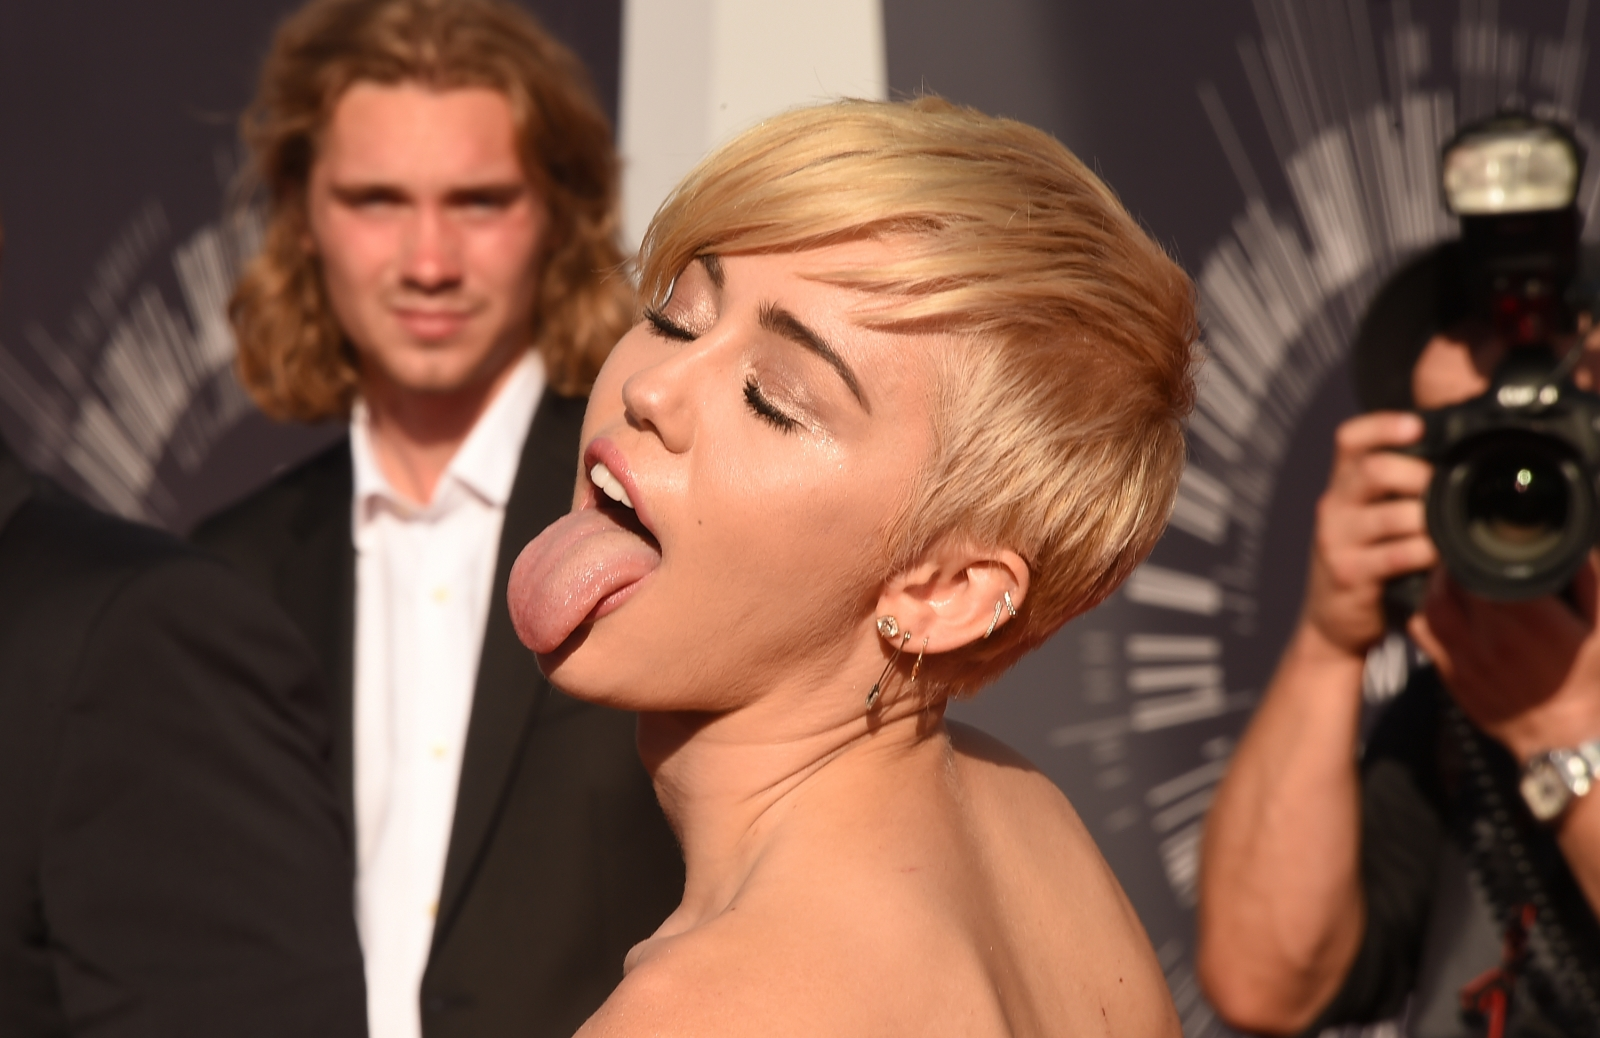 Miley Cyrus Gets Showered in Birthday Gifts From Liam Hemsworth!